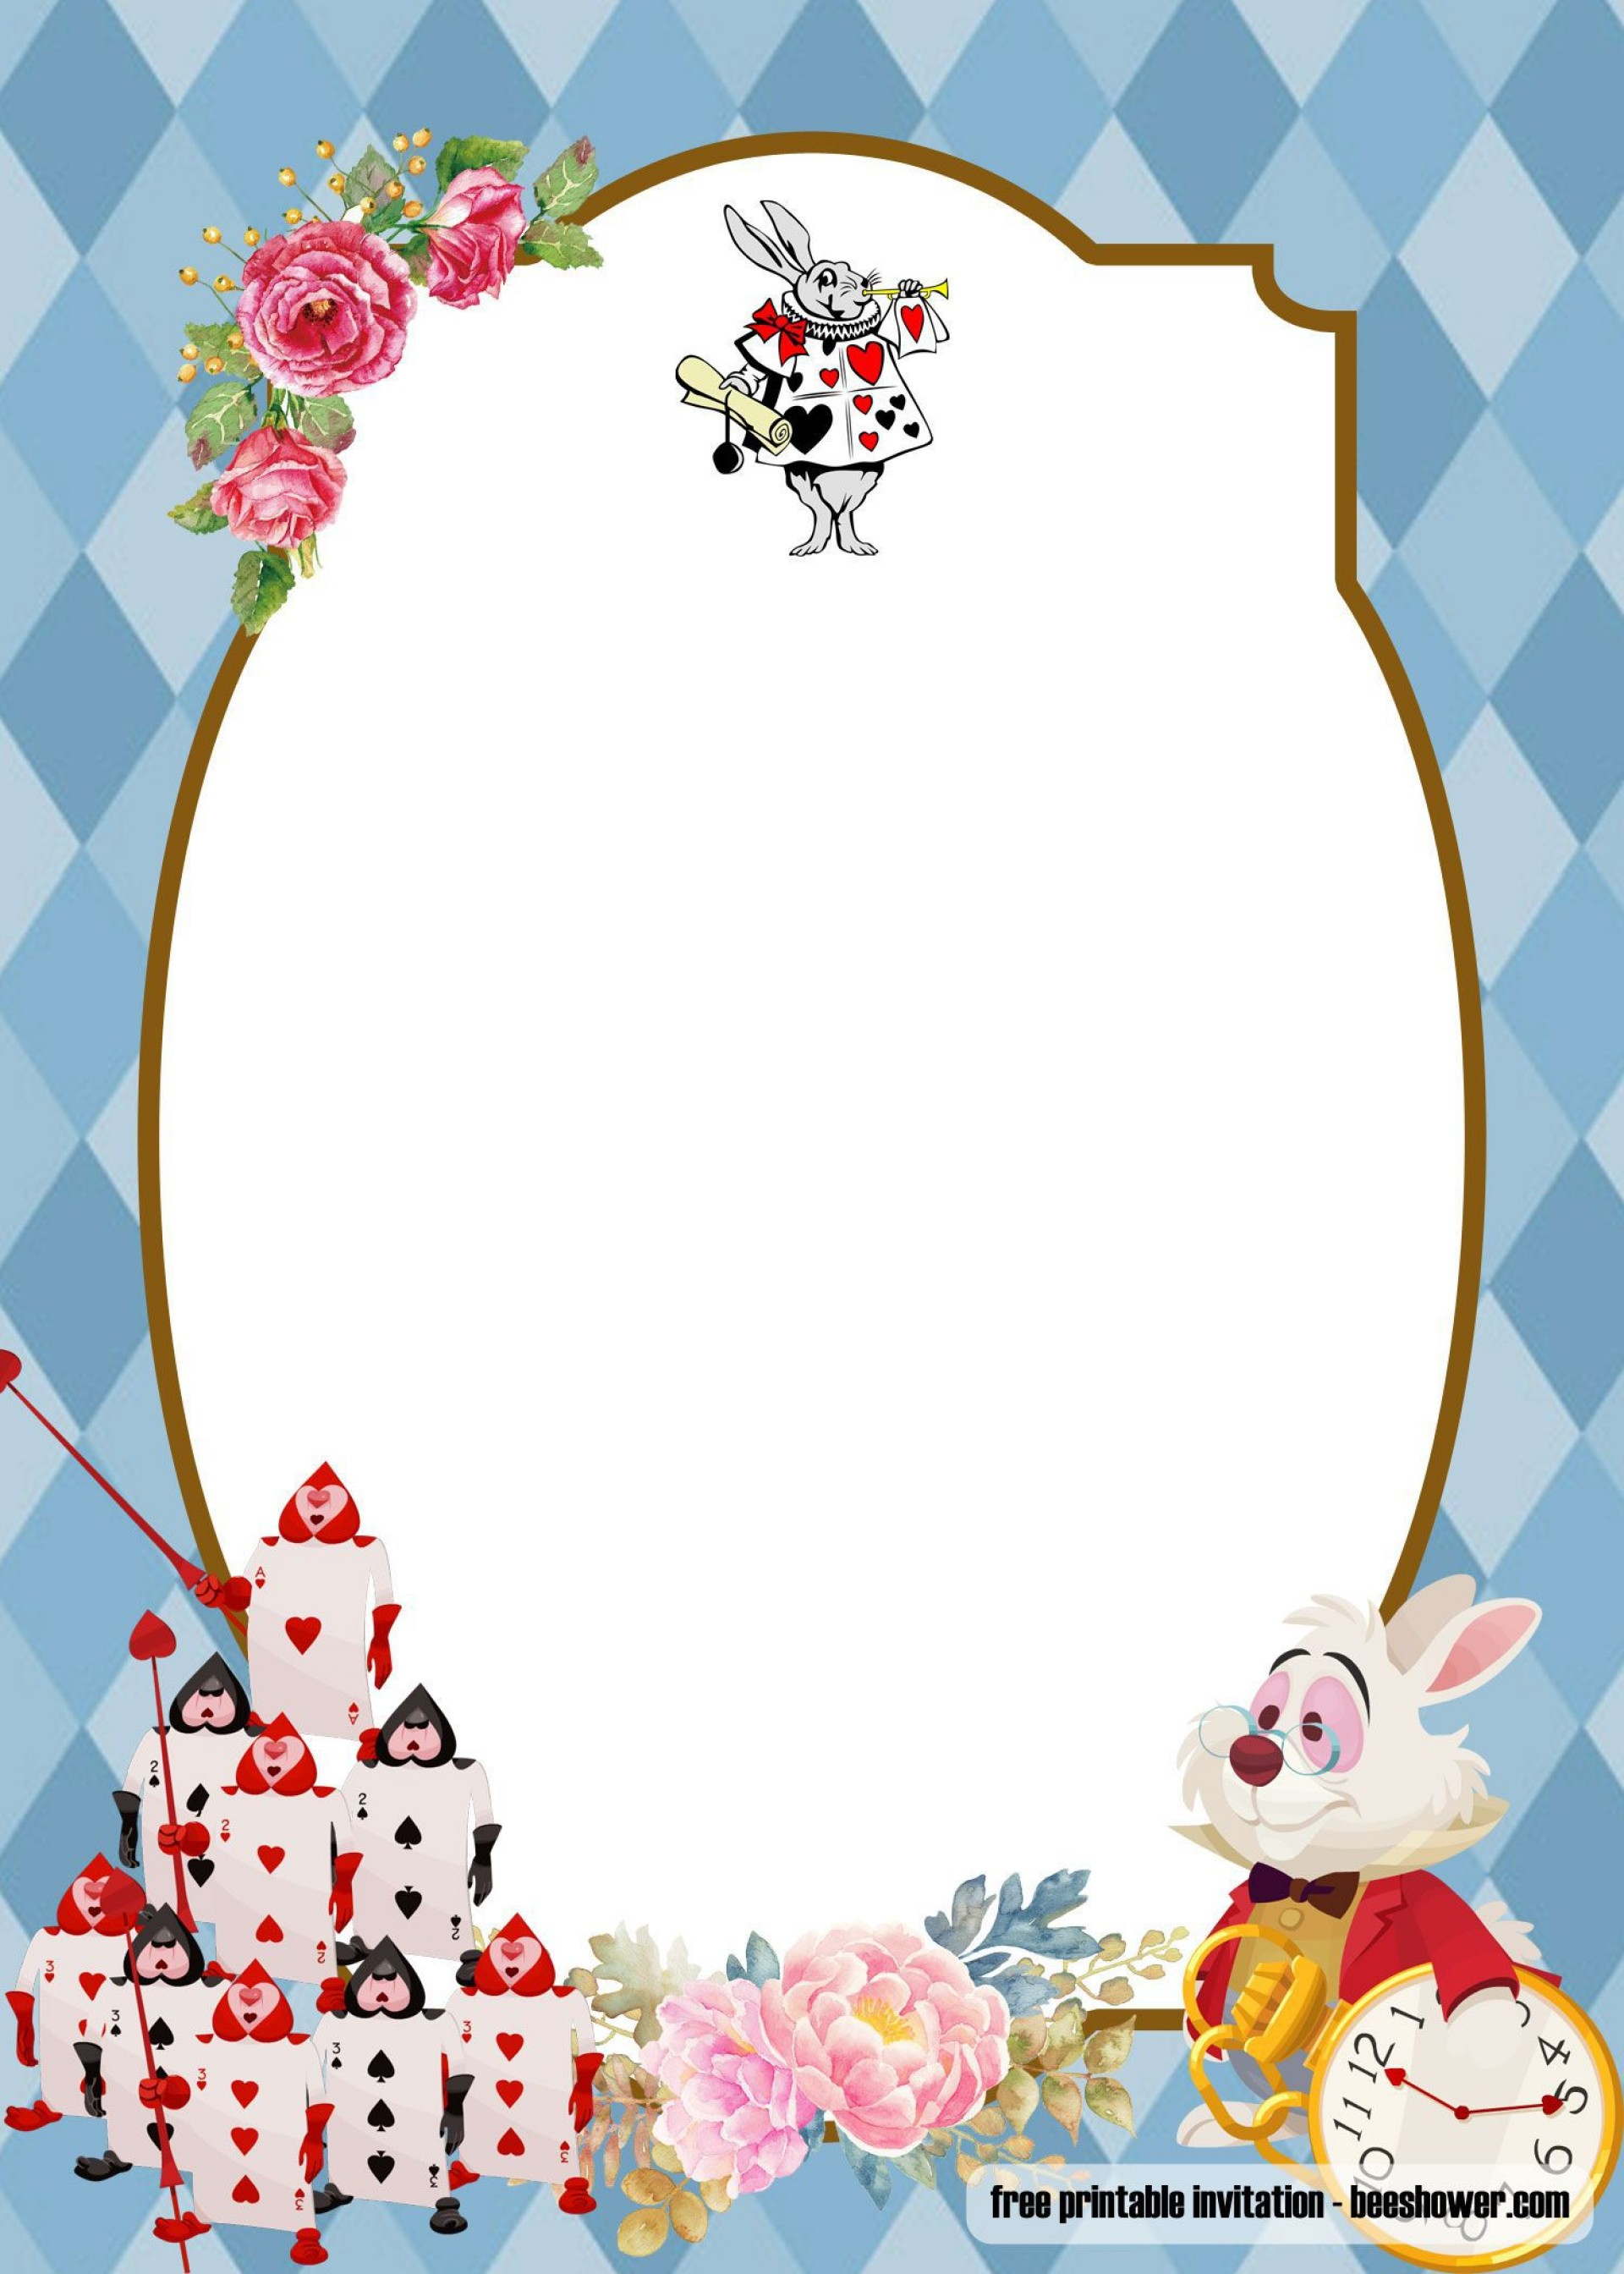 006 Unbelievable Alice In Wonderland Invite Template High Def  Party Invitation Free1920